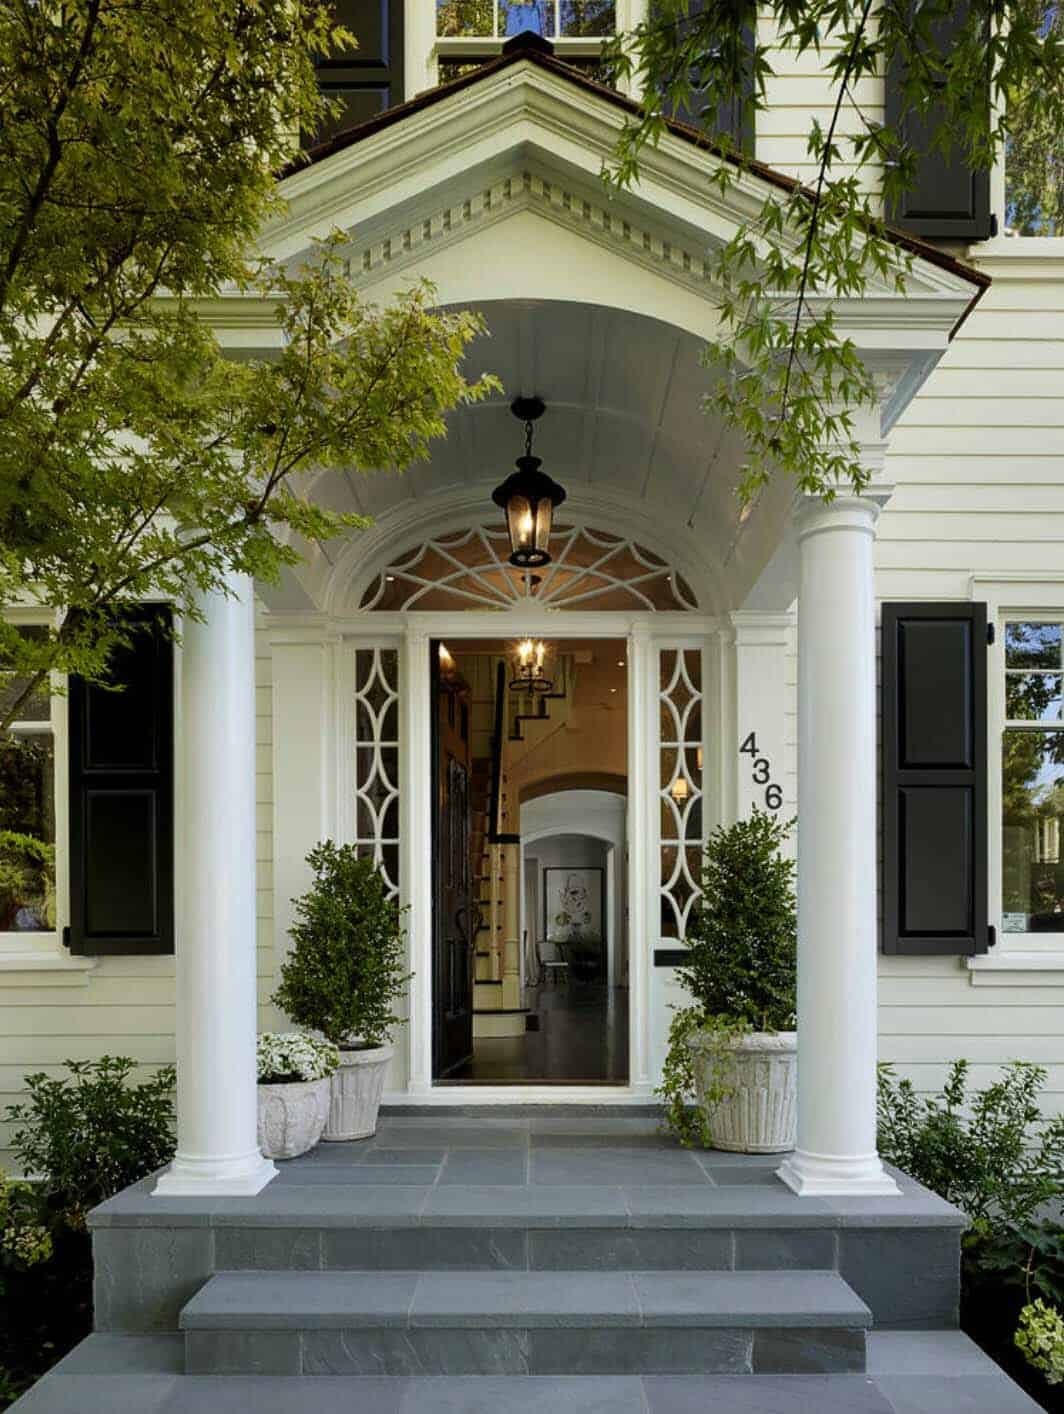 Dutch Colonial Revival Gets An Elegant Refresh In San Francisco Bay Area